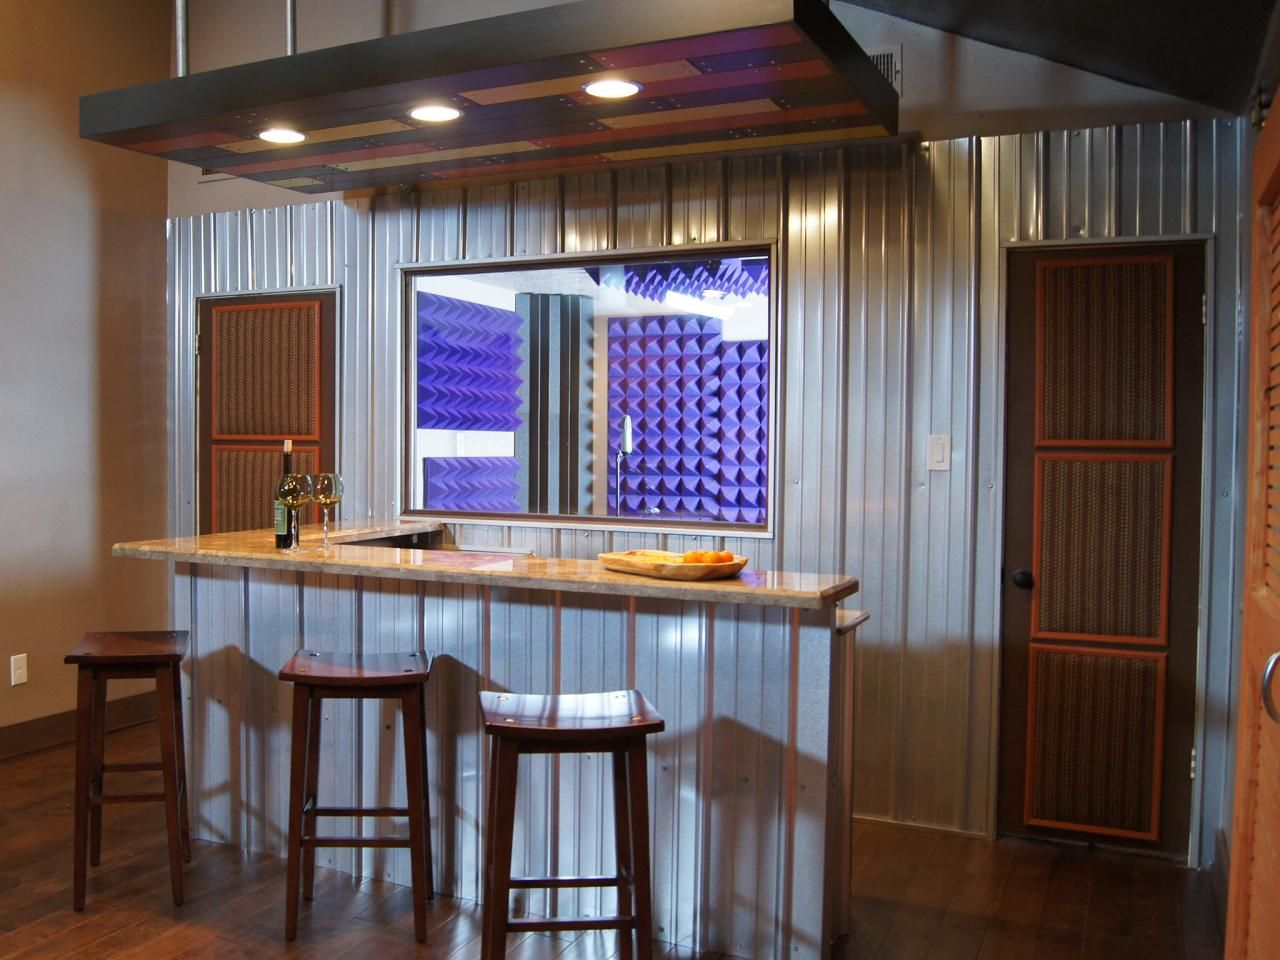 Merveilleux Basement Bar Ideas. Basement Bar Ideas M